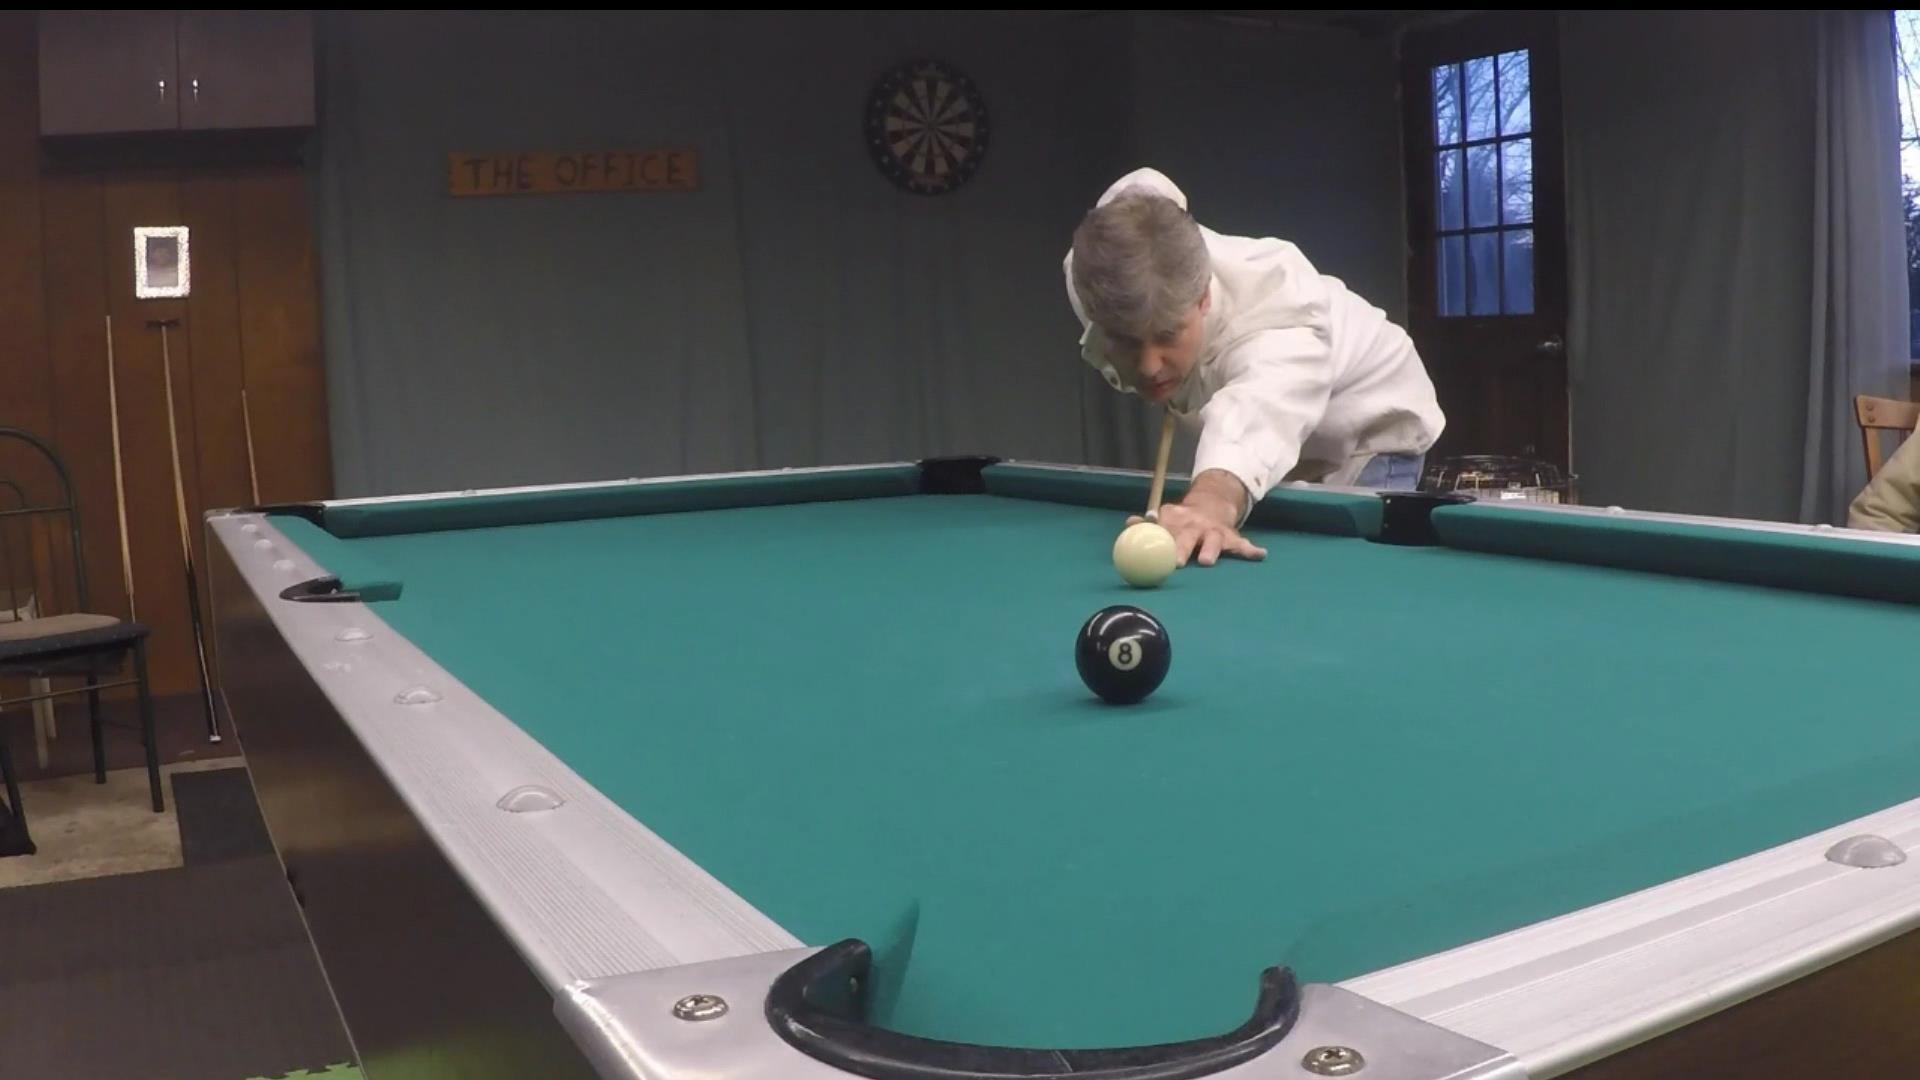 Iq Pool & Billiards Meme Template